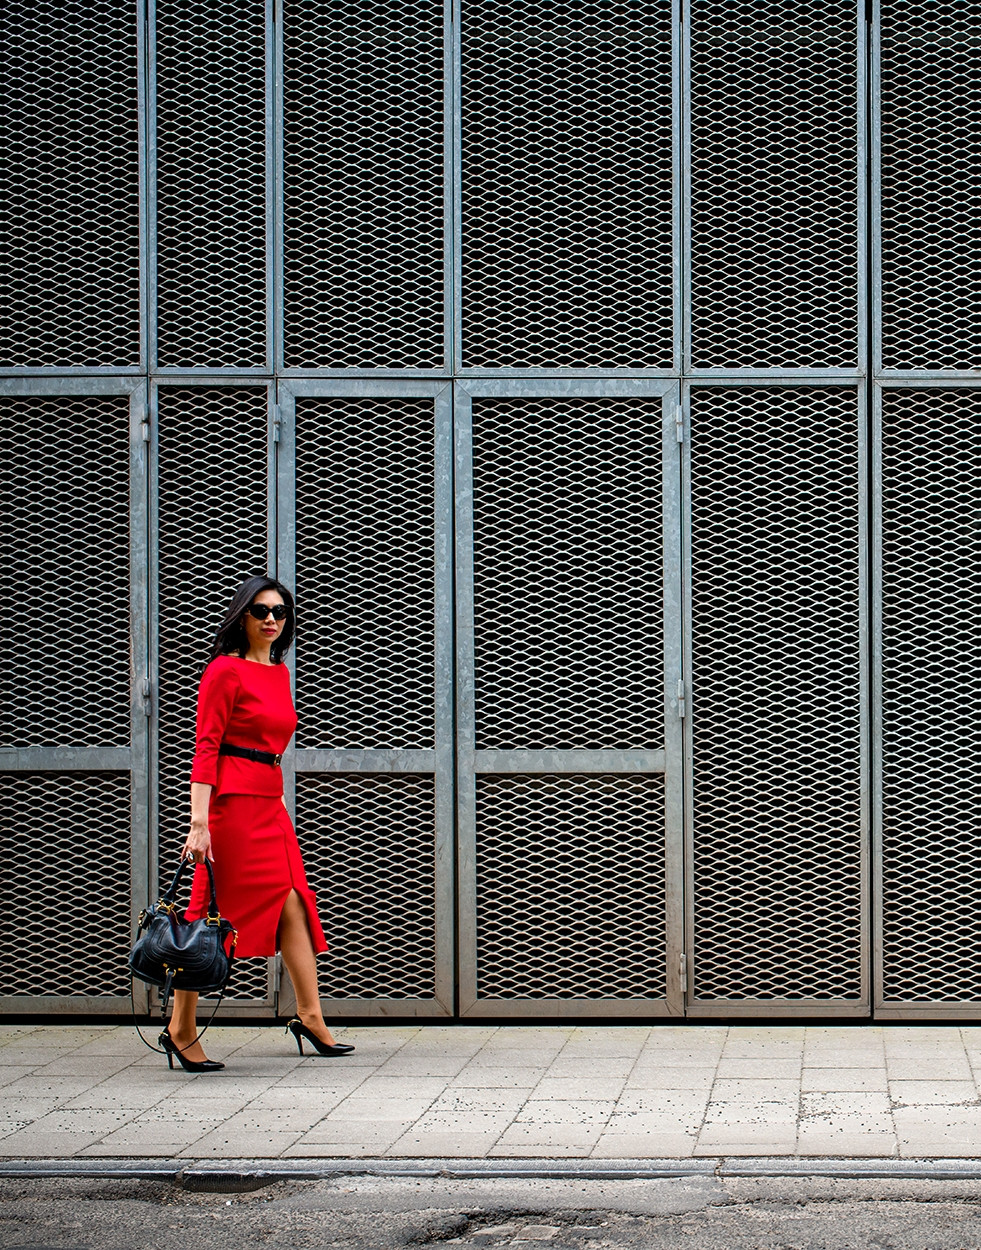 Woman in a red pencil dress walking in the street